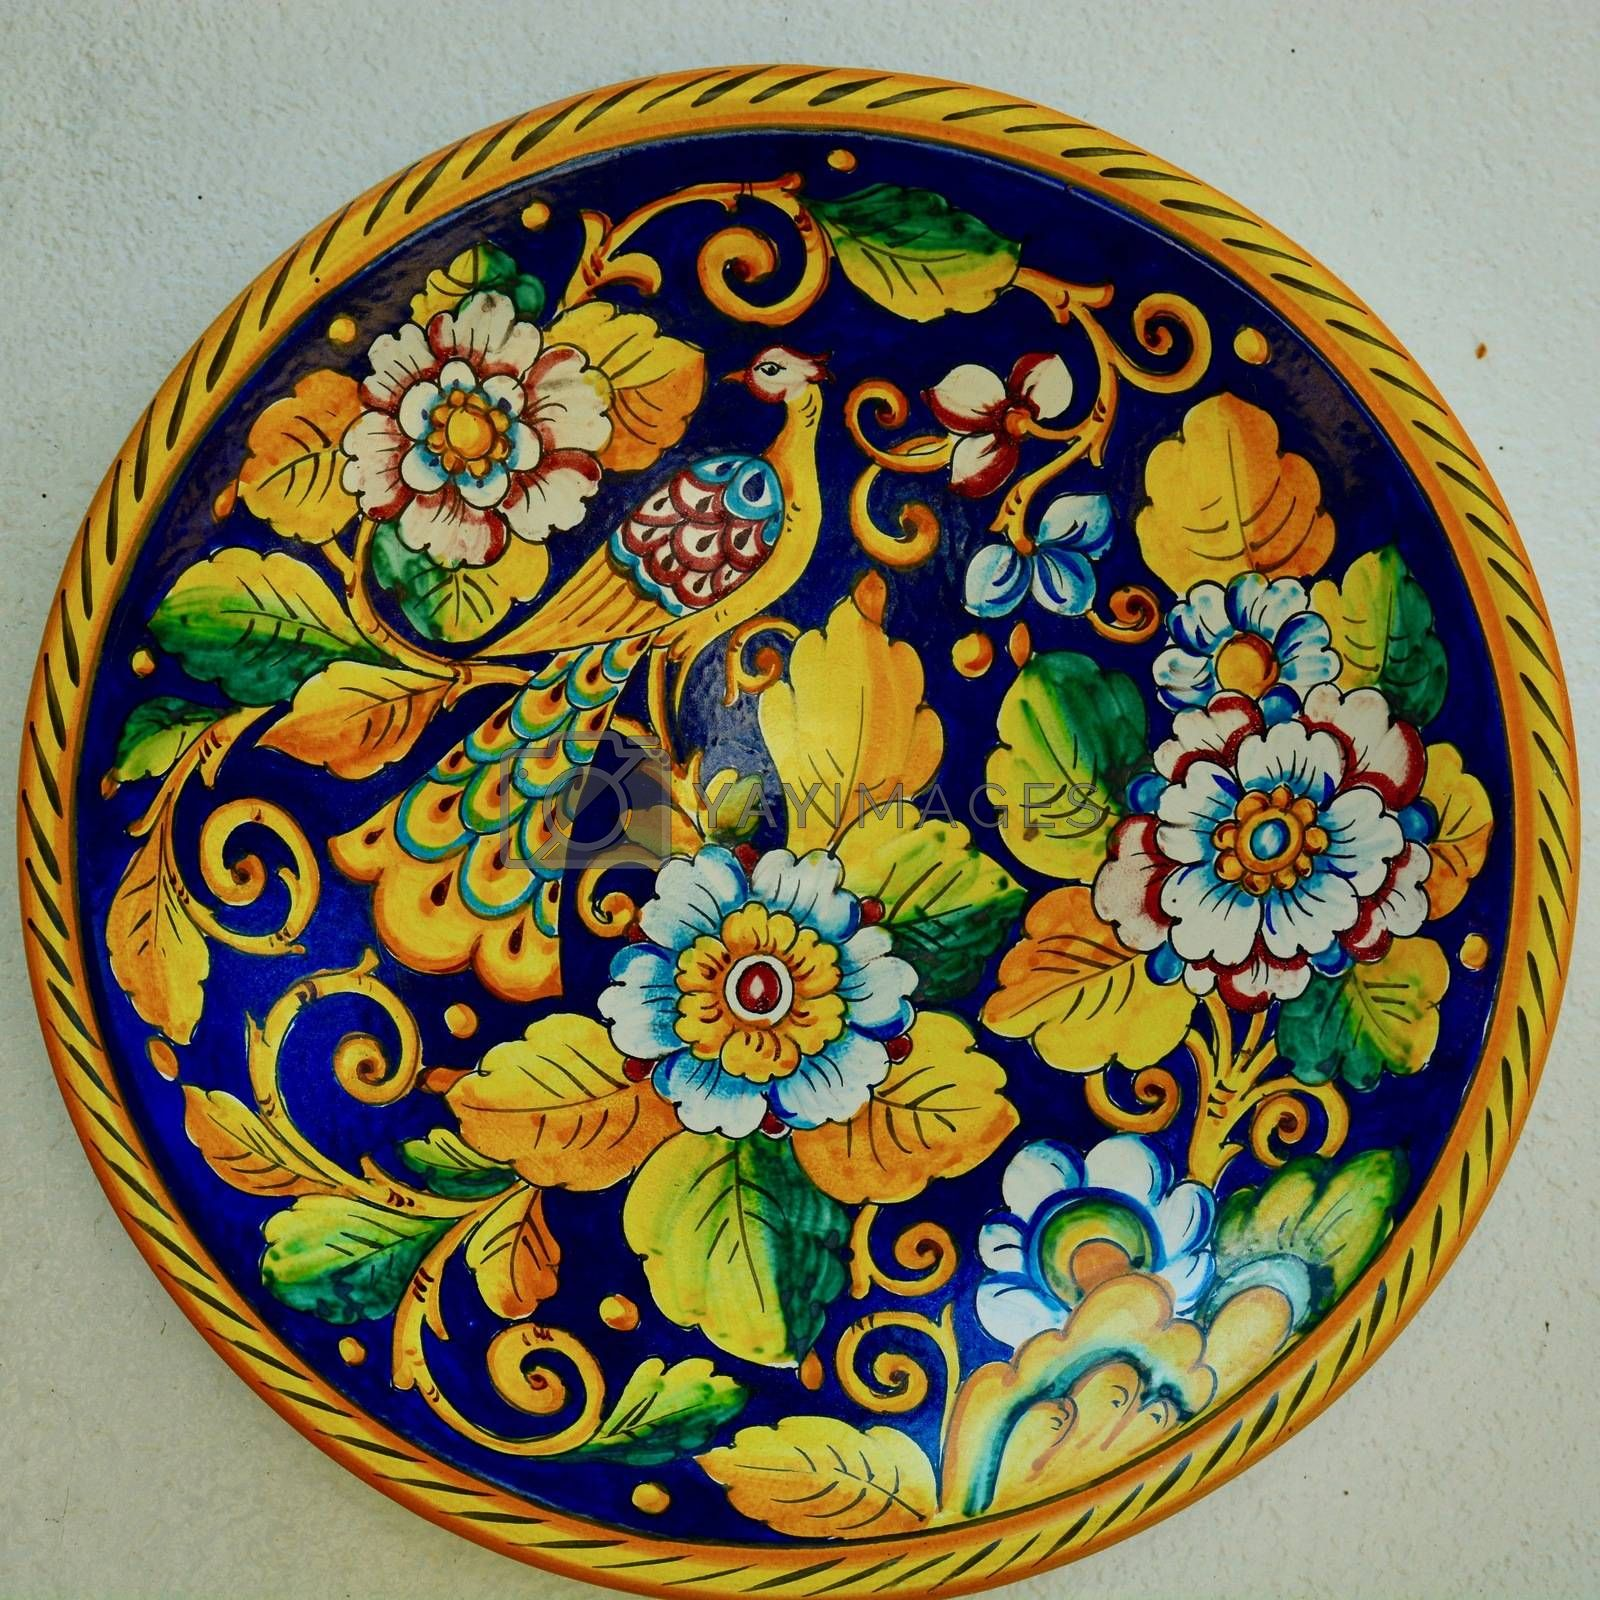 Decorative porcelain plates, cheerful and  brightly coloured